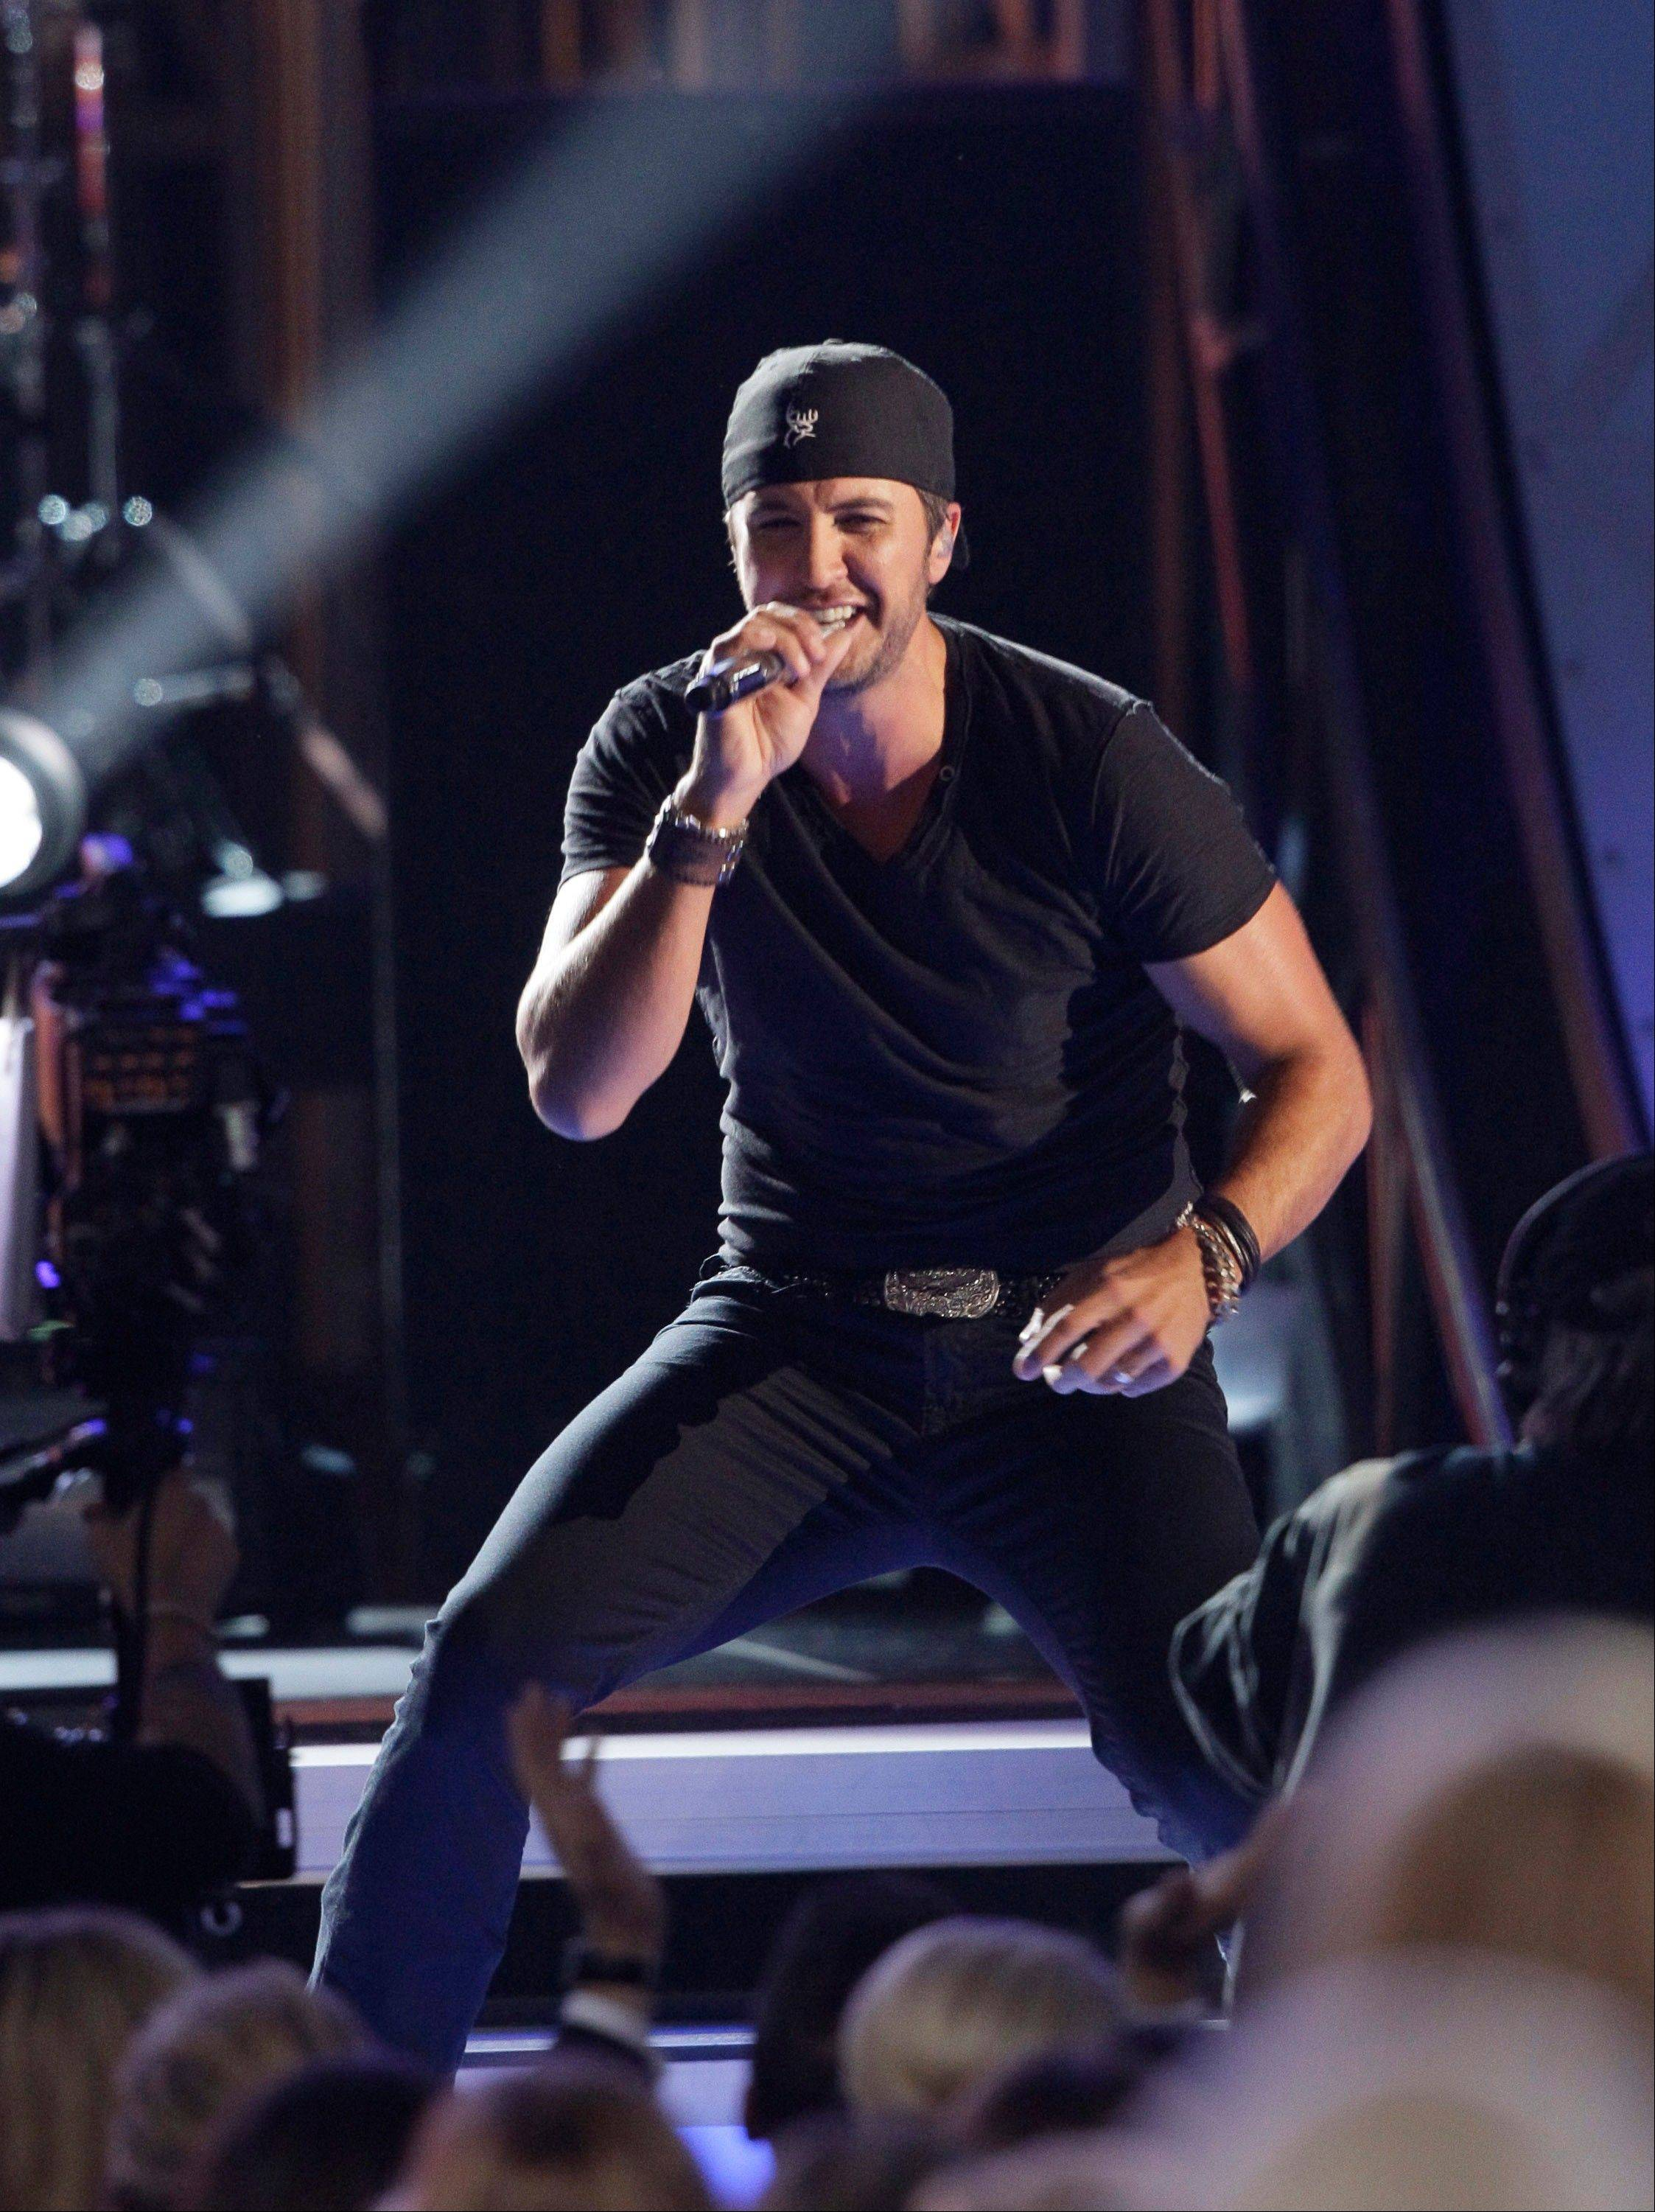 Luke Bryan performs onstage at the 46th Annual Country Music Awards at the Bridgestone Arena on Thursday, Nov. 1, 2012, in Nashville, Tenn.